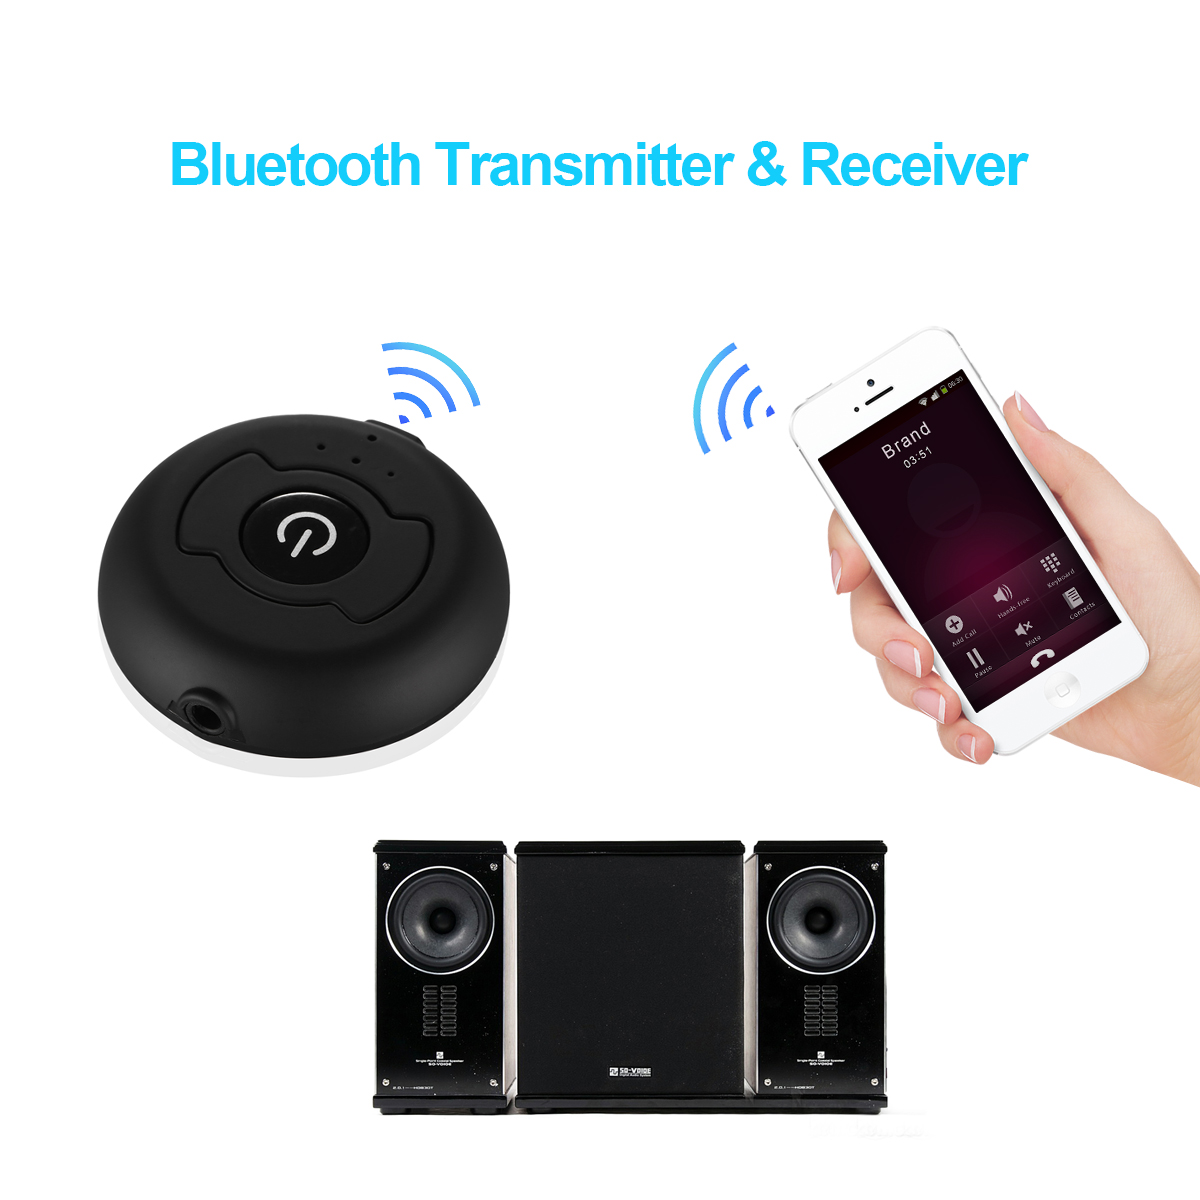 Wireless Bluetooth 4.0 A2DP Audio Stereo Dongle Adapter Transmitter for TV PC | eBay